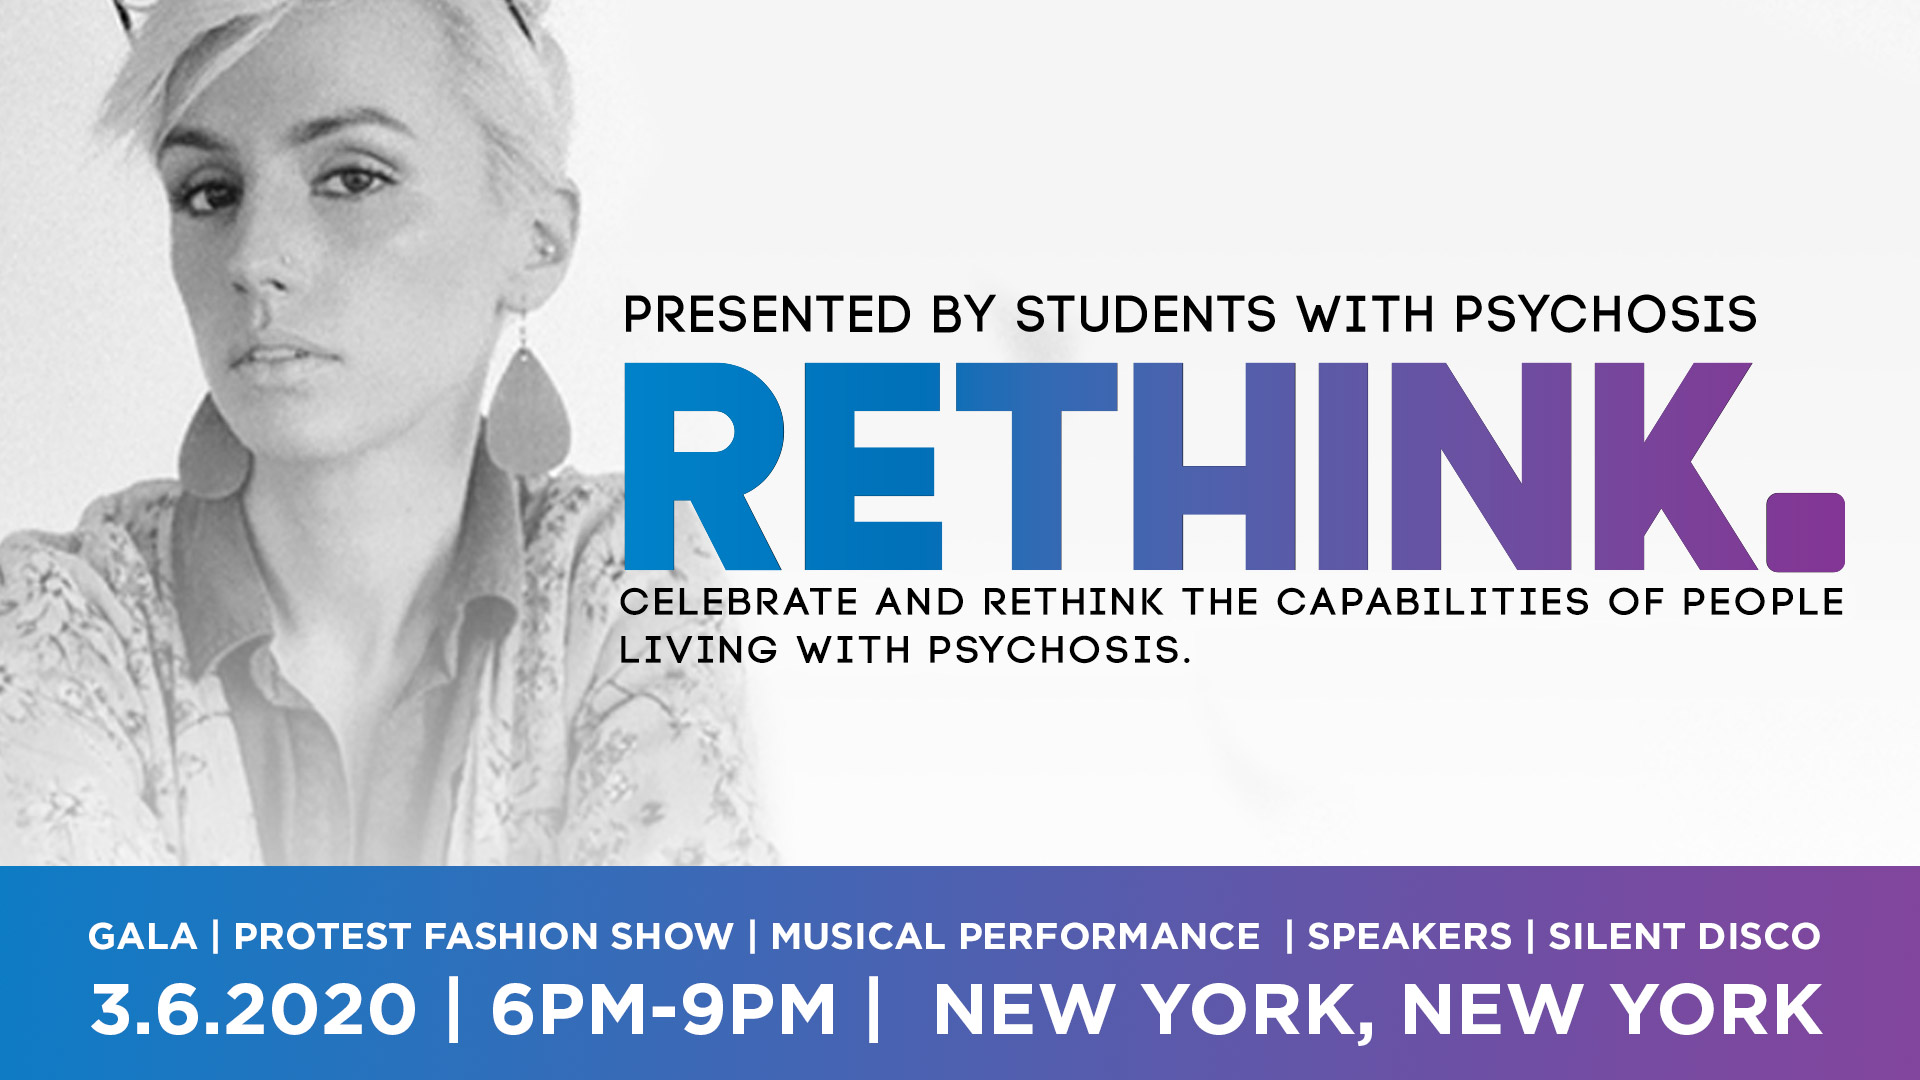 Students with psychosis rethink event